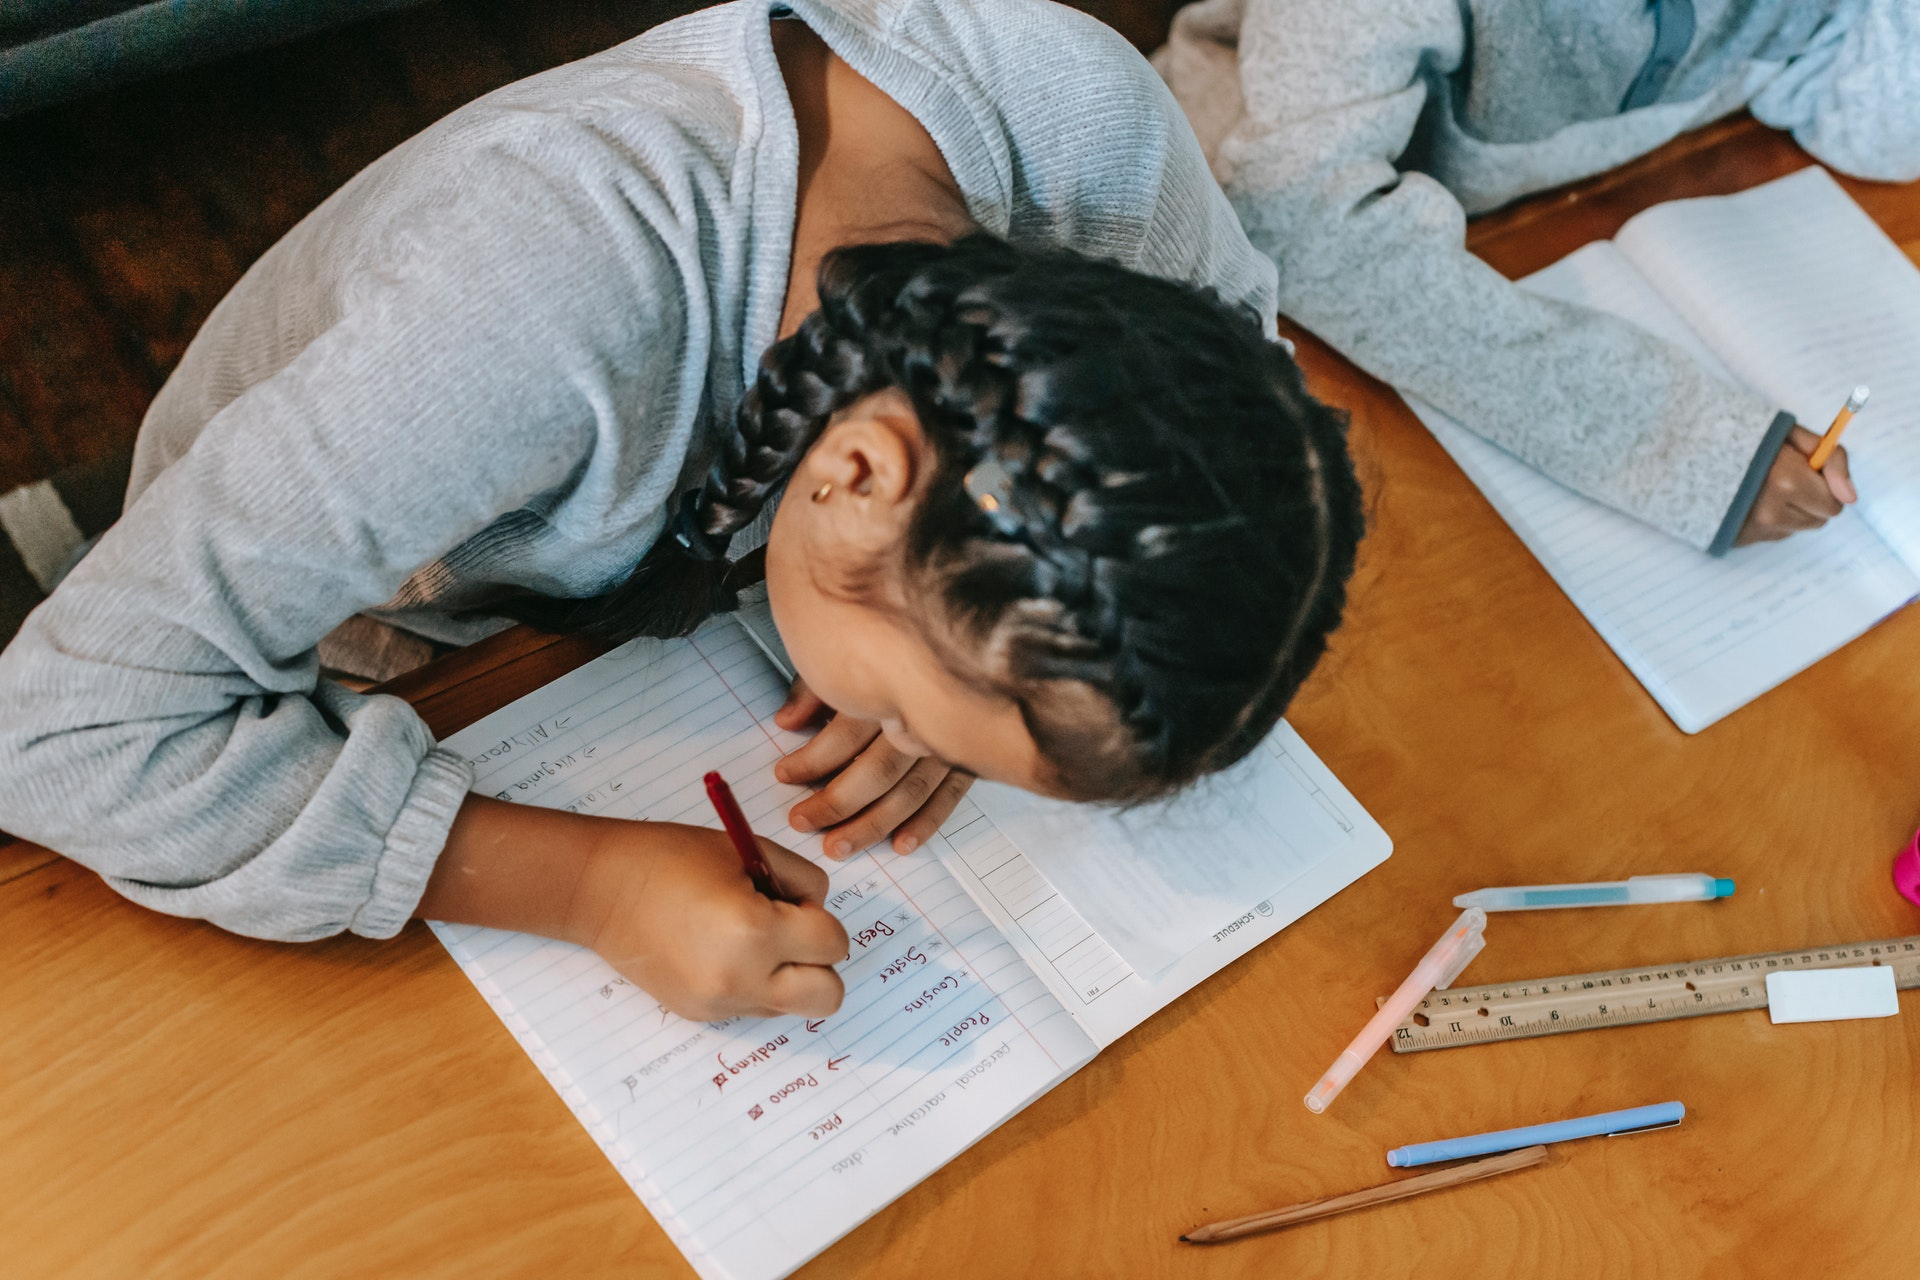 Top-down photograph of a girl with braids sitting at a desk next to another student and writing in a notebook.